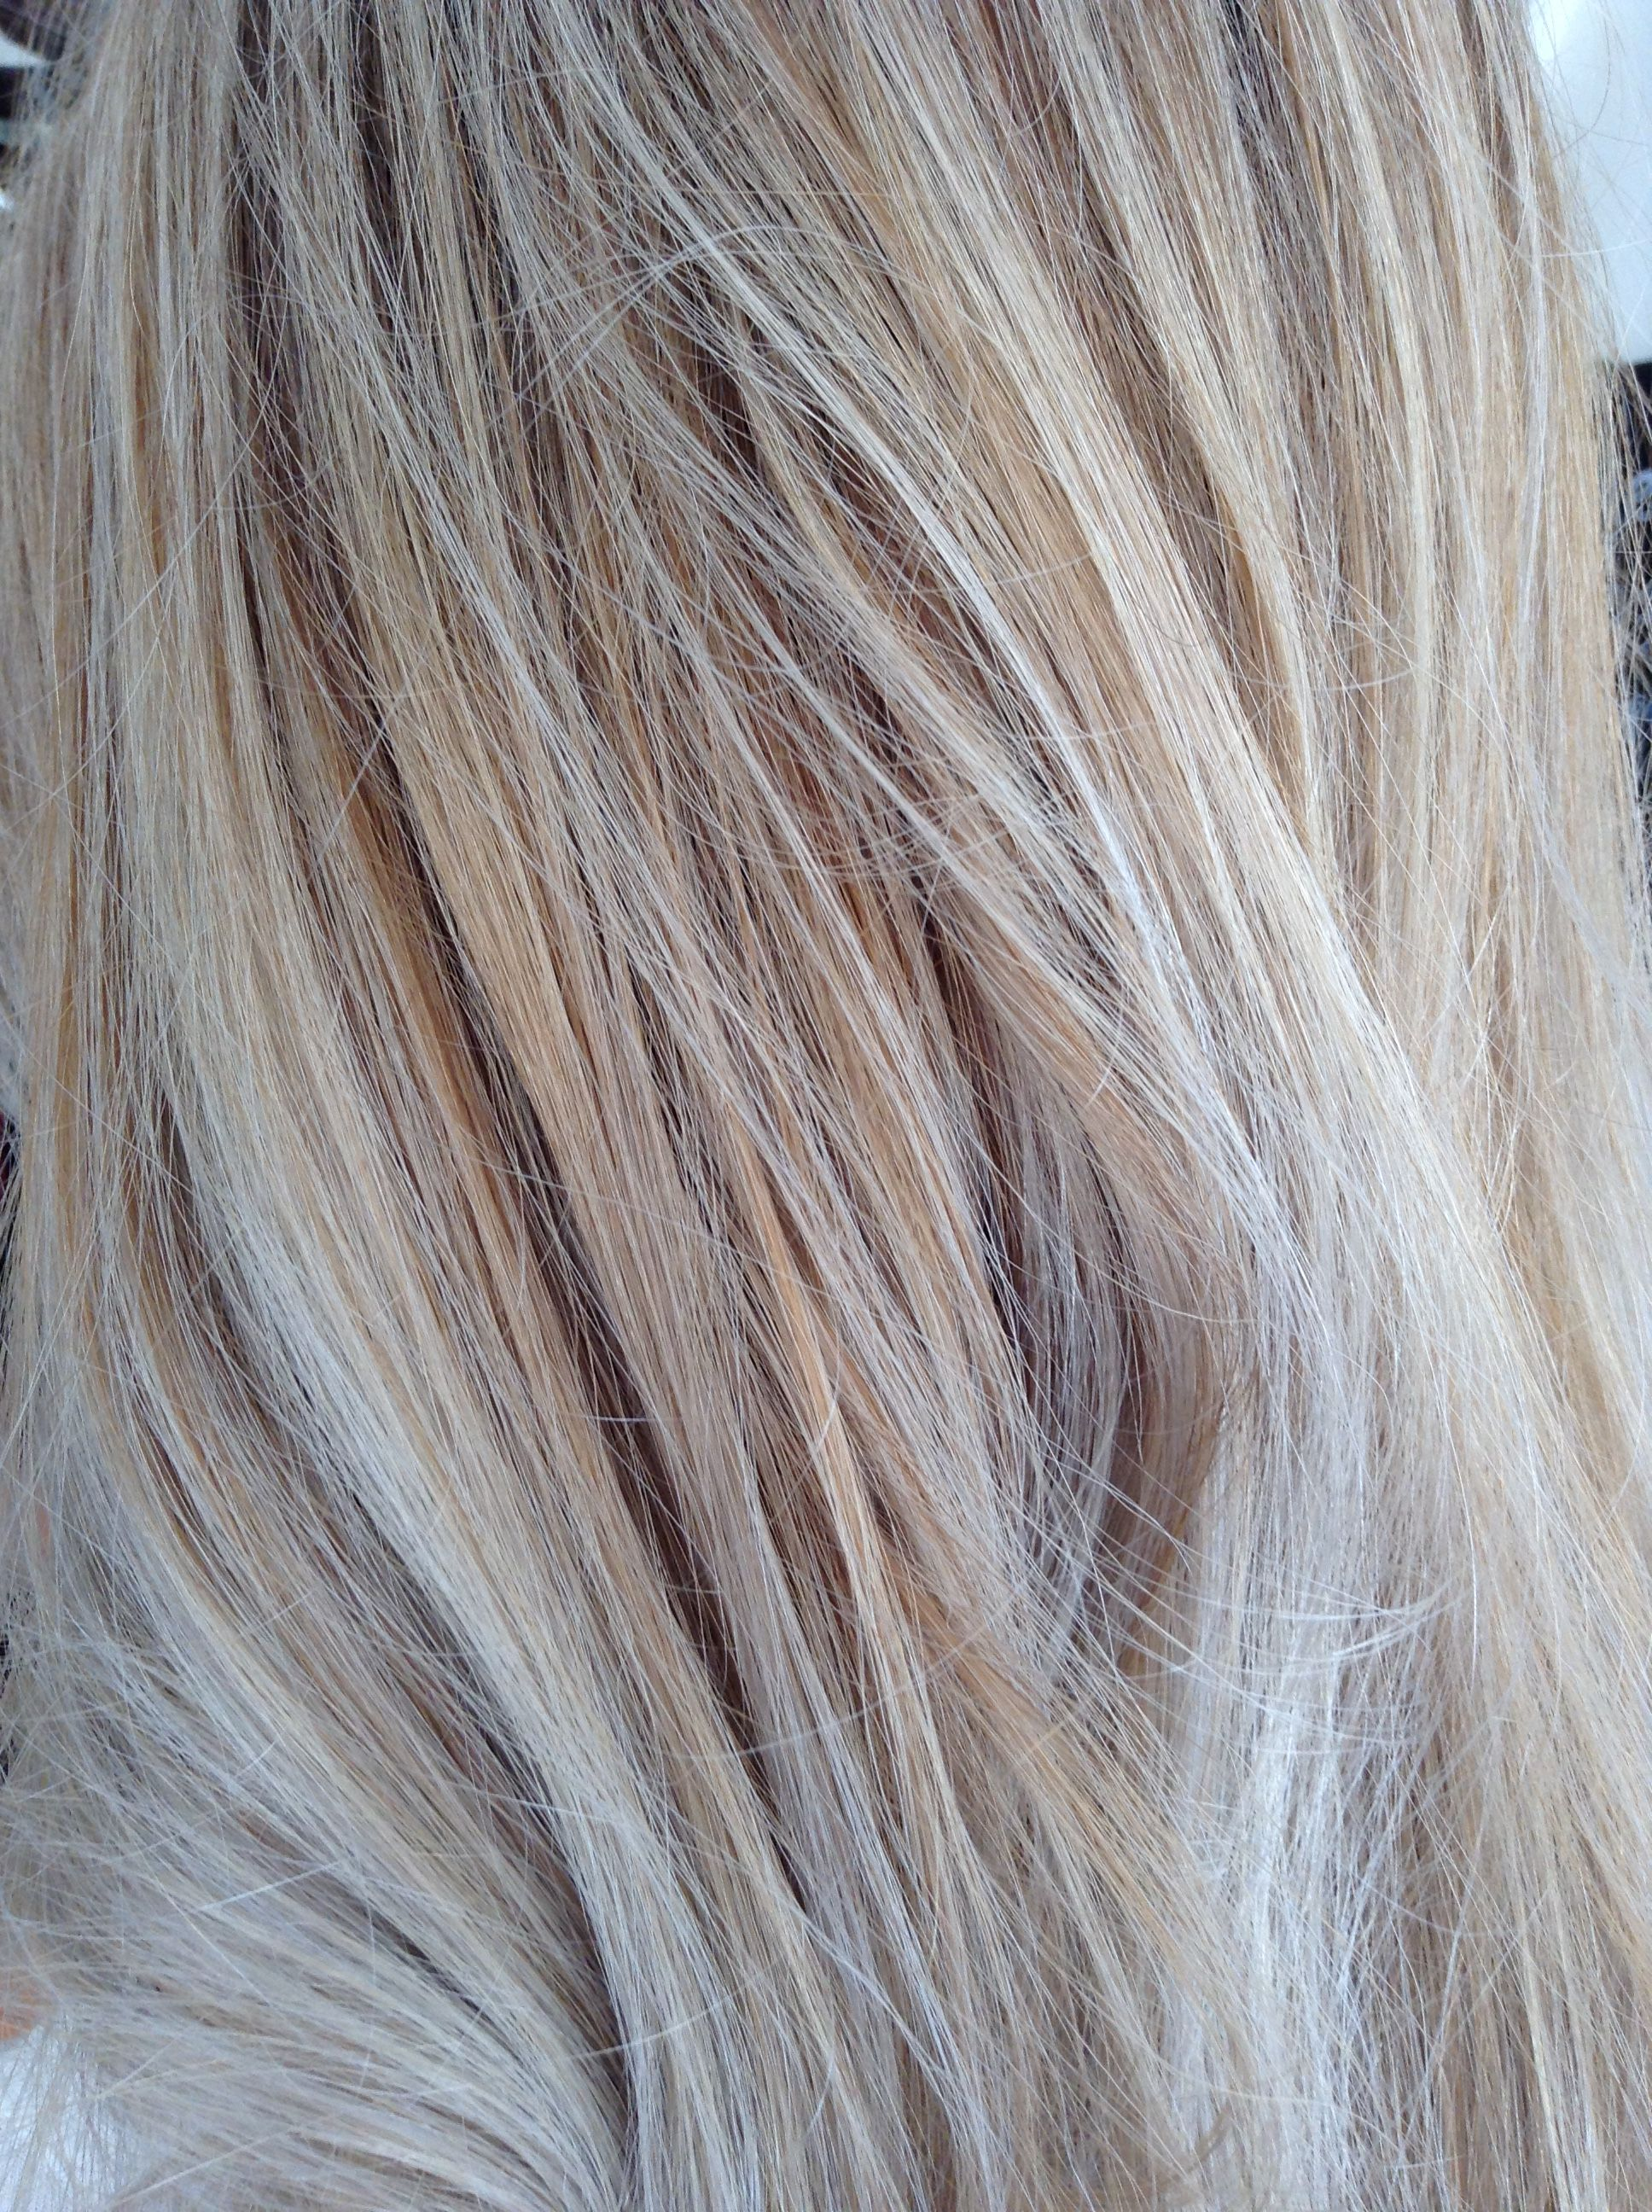 #iceblond #highlights #blond #schwarzkopf #blondme #innerartist